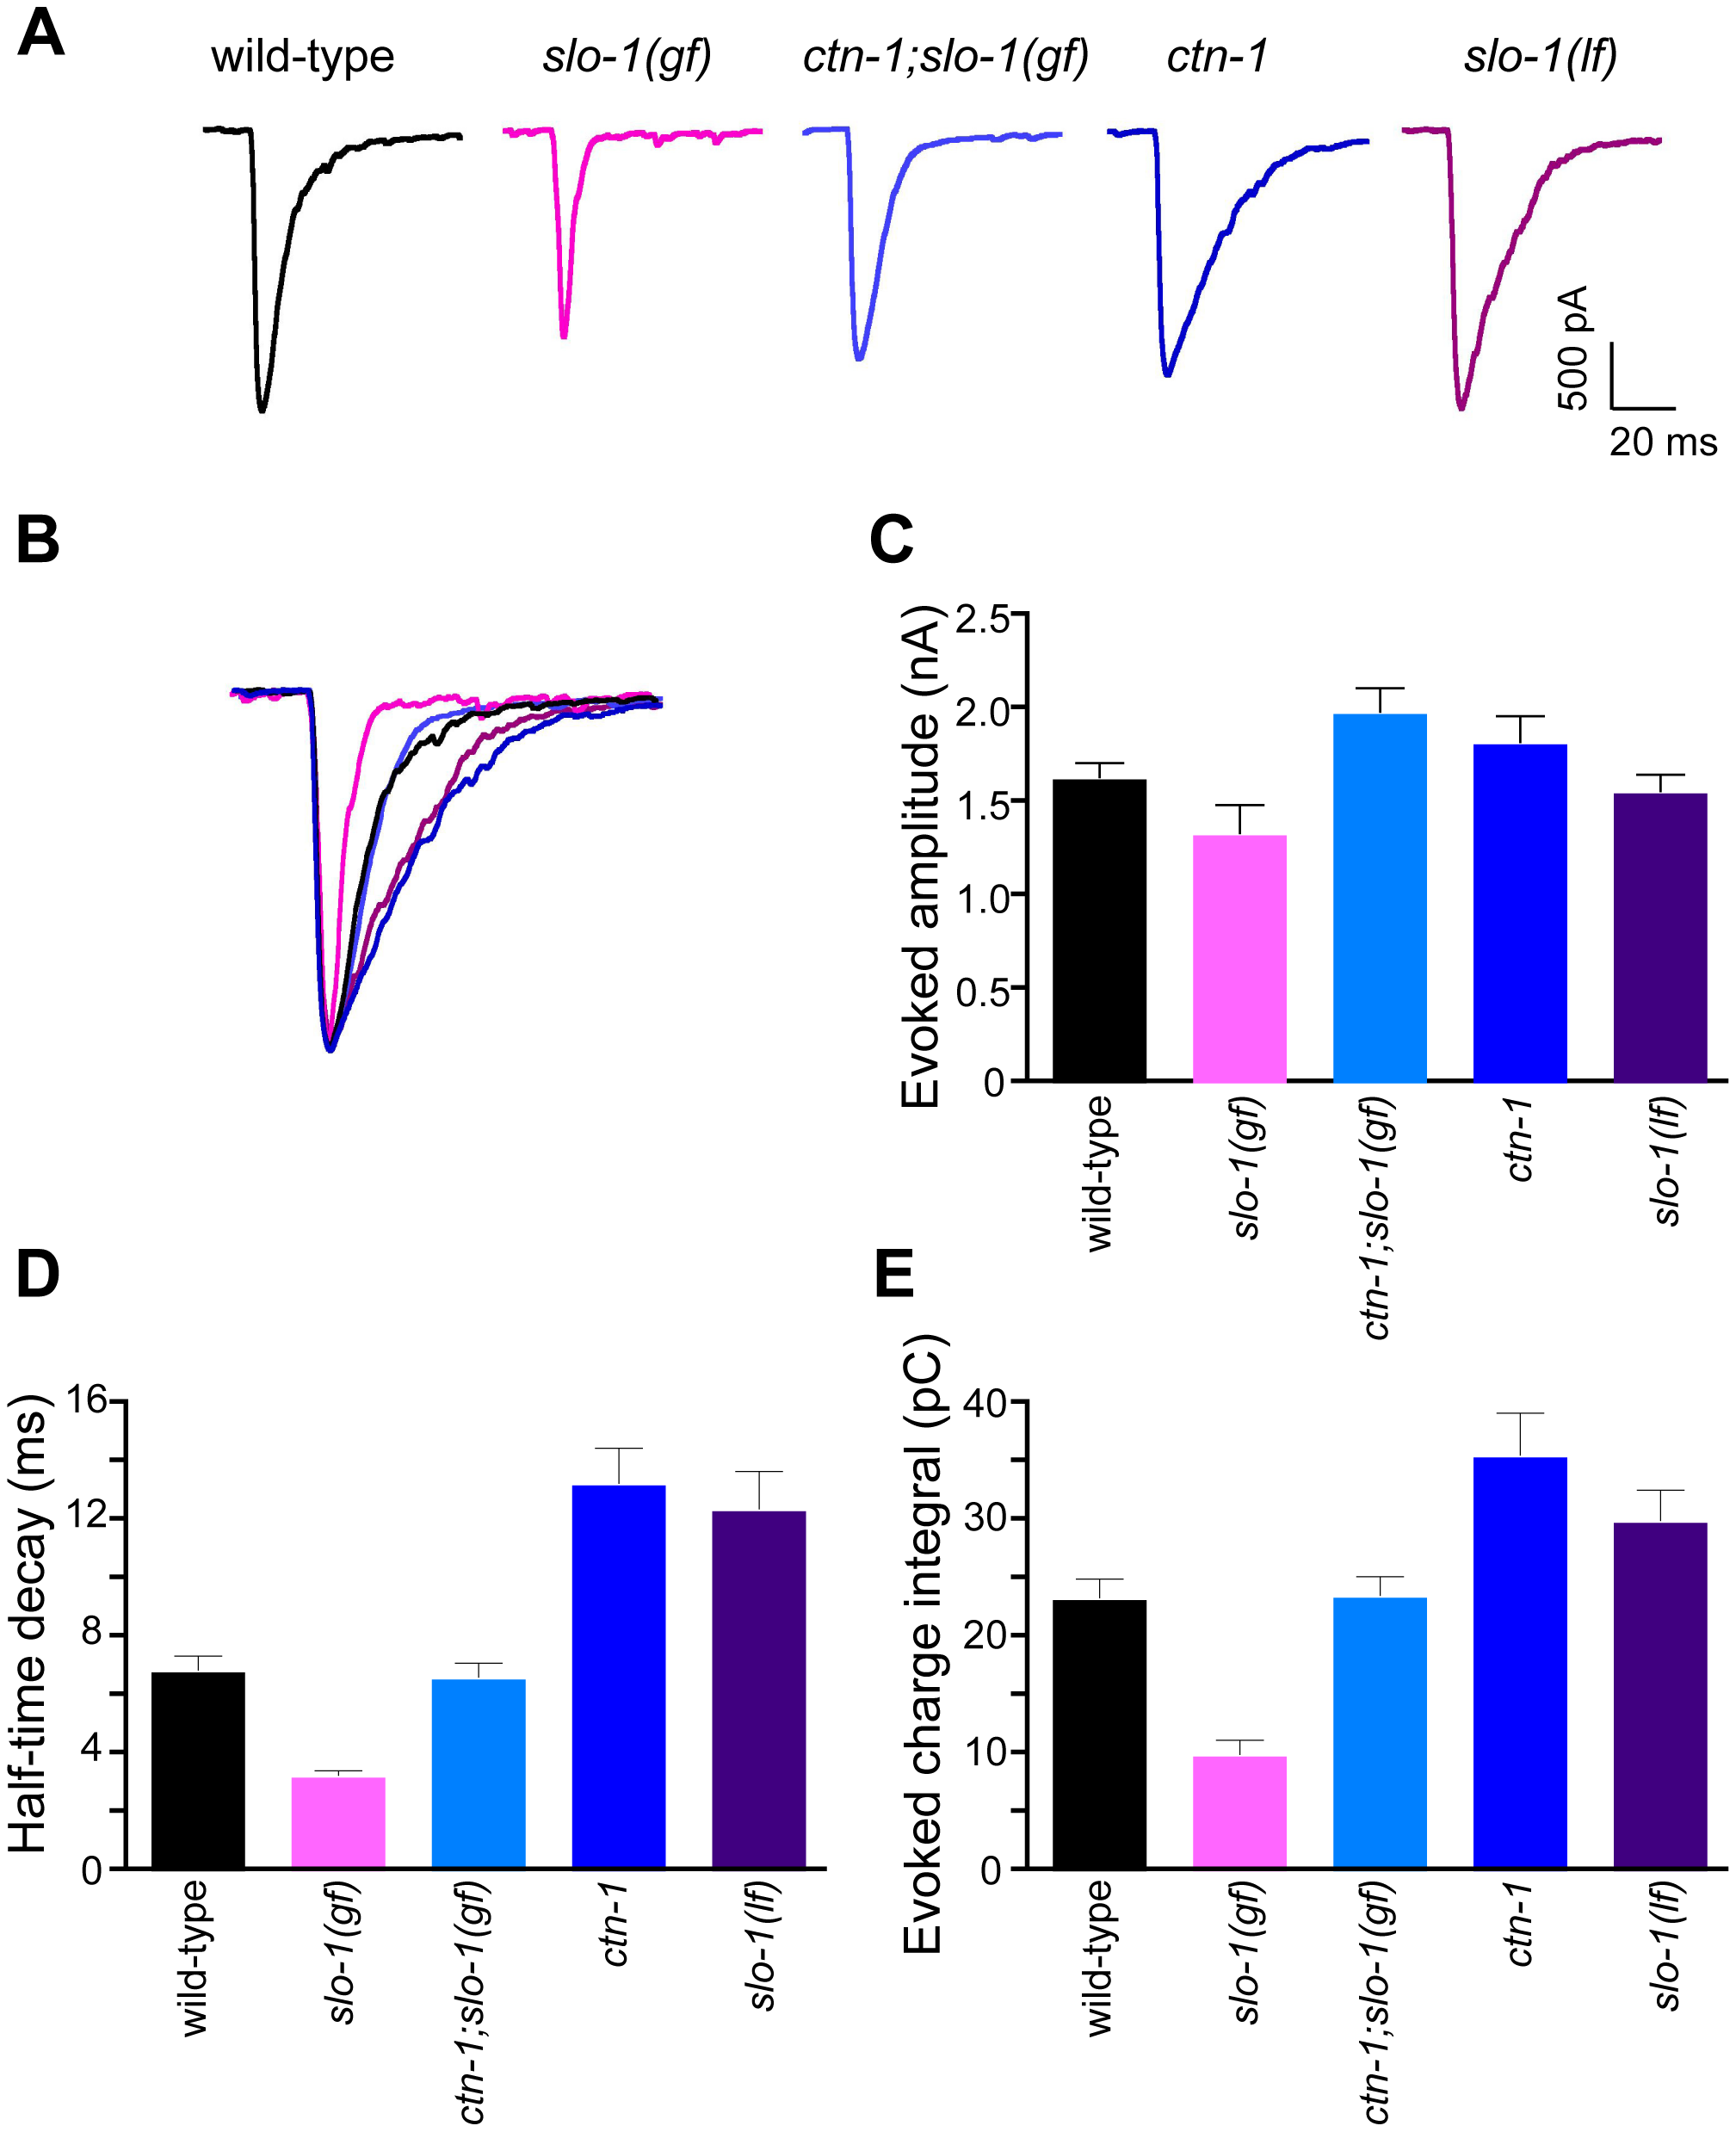 <i>ctn-1</i> mutation suppresses defects of <i>slo-1(gf)</i> evoked synaptic responses at the neuromuscular junctions.